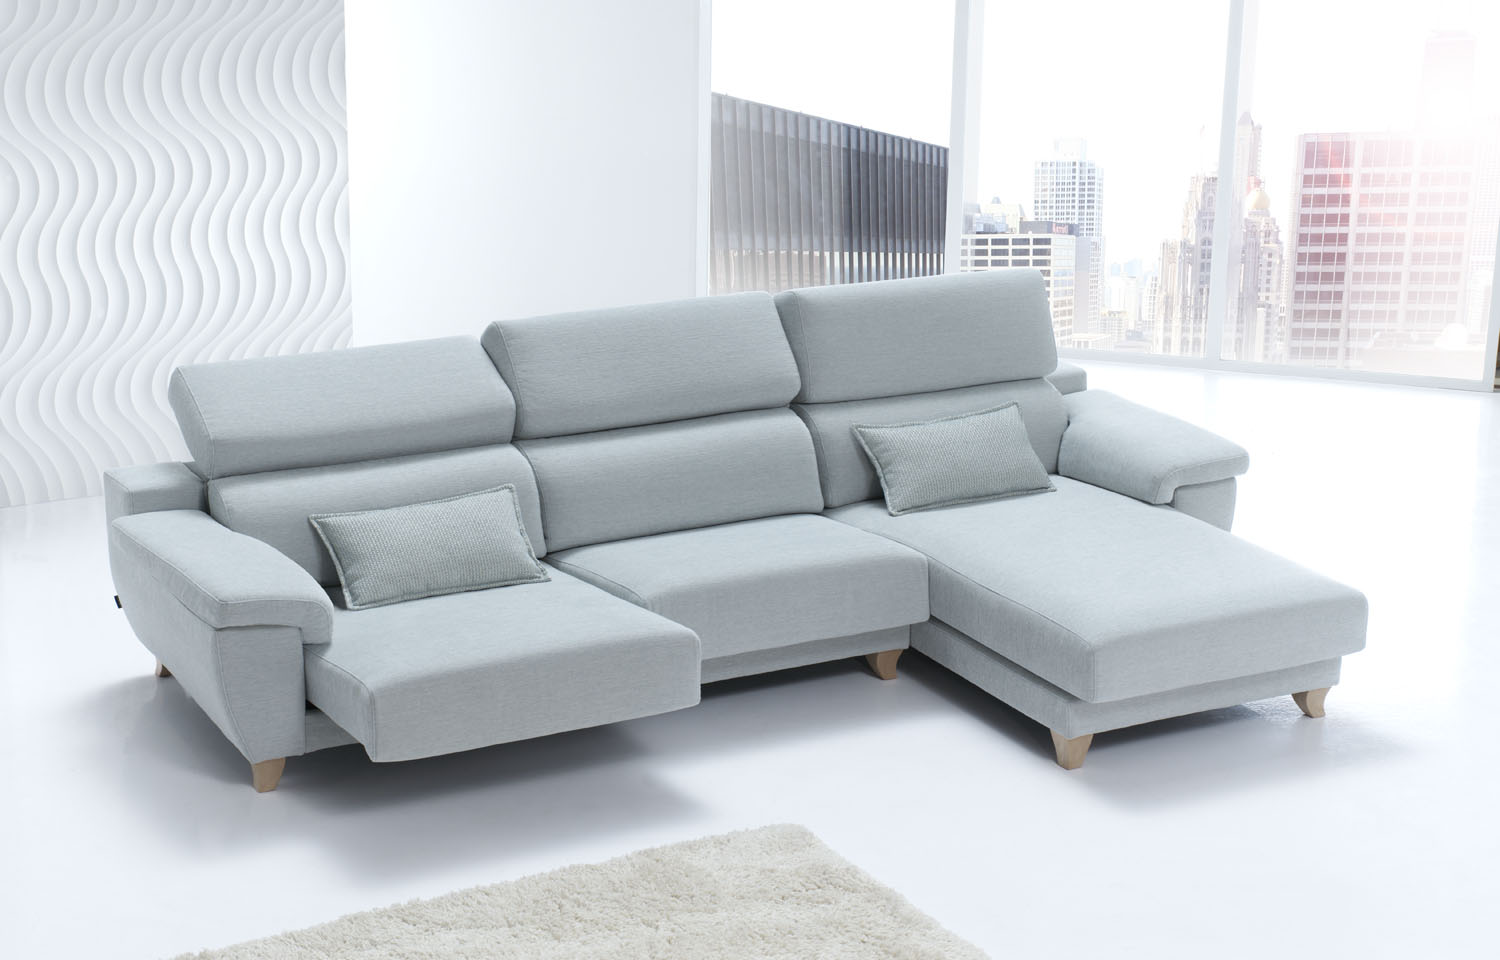 sillon sofas Muebles los barriales. Betty